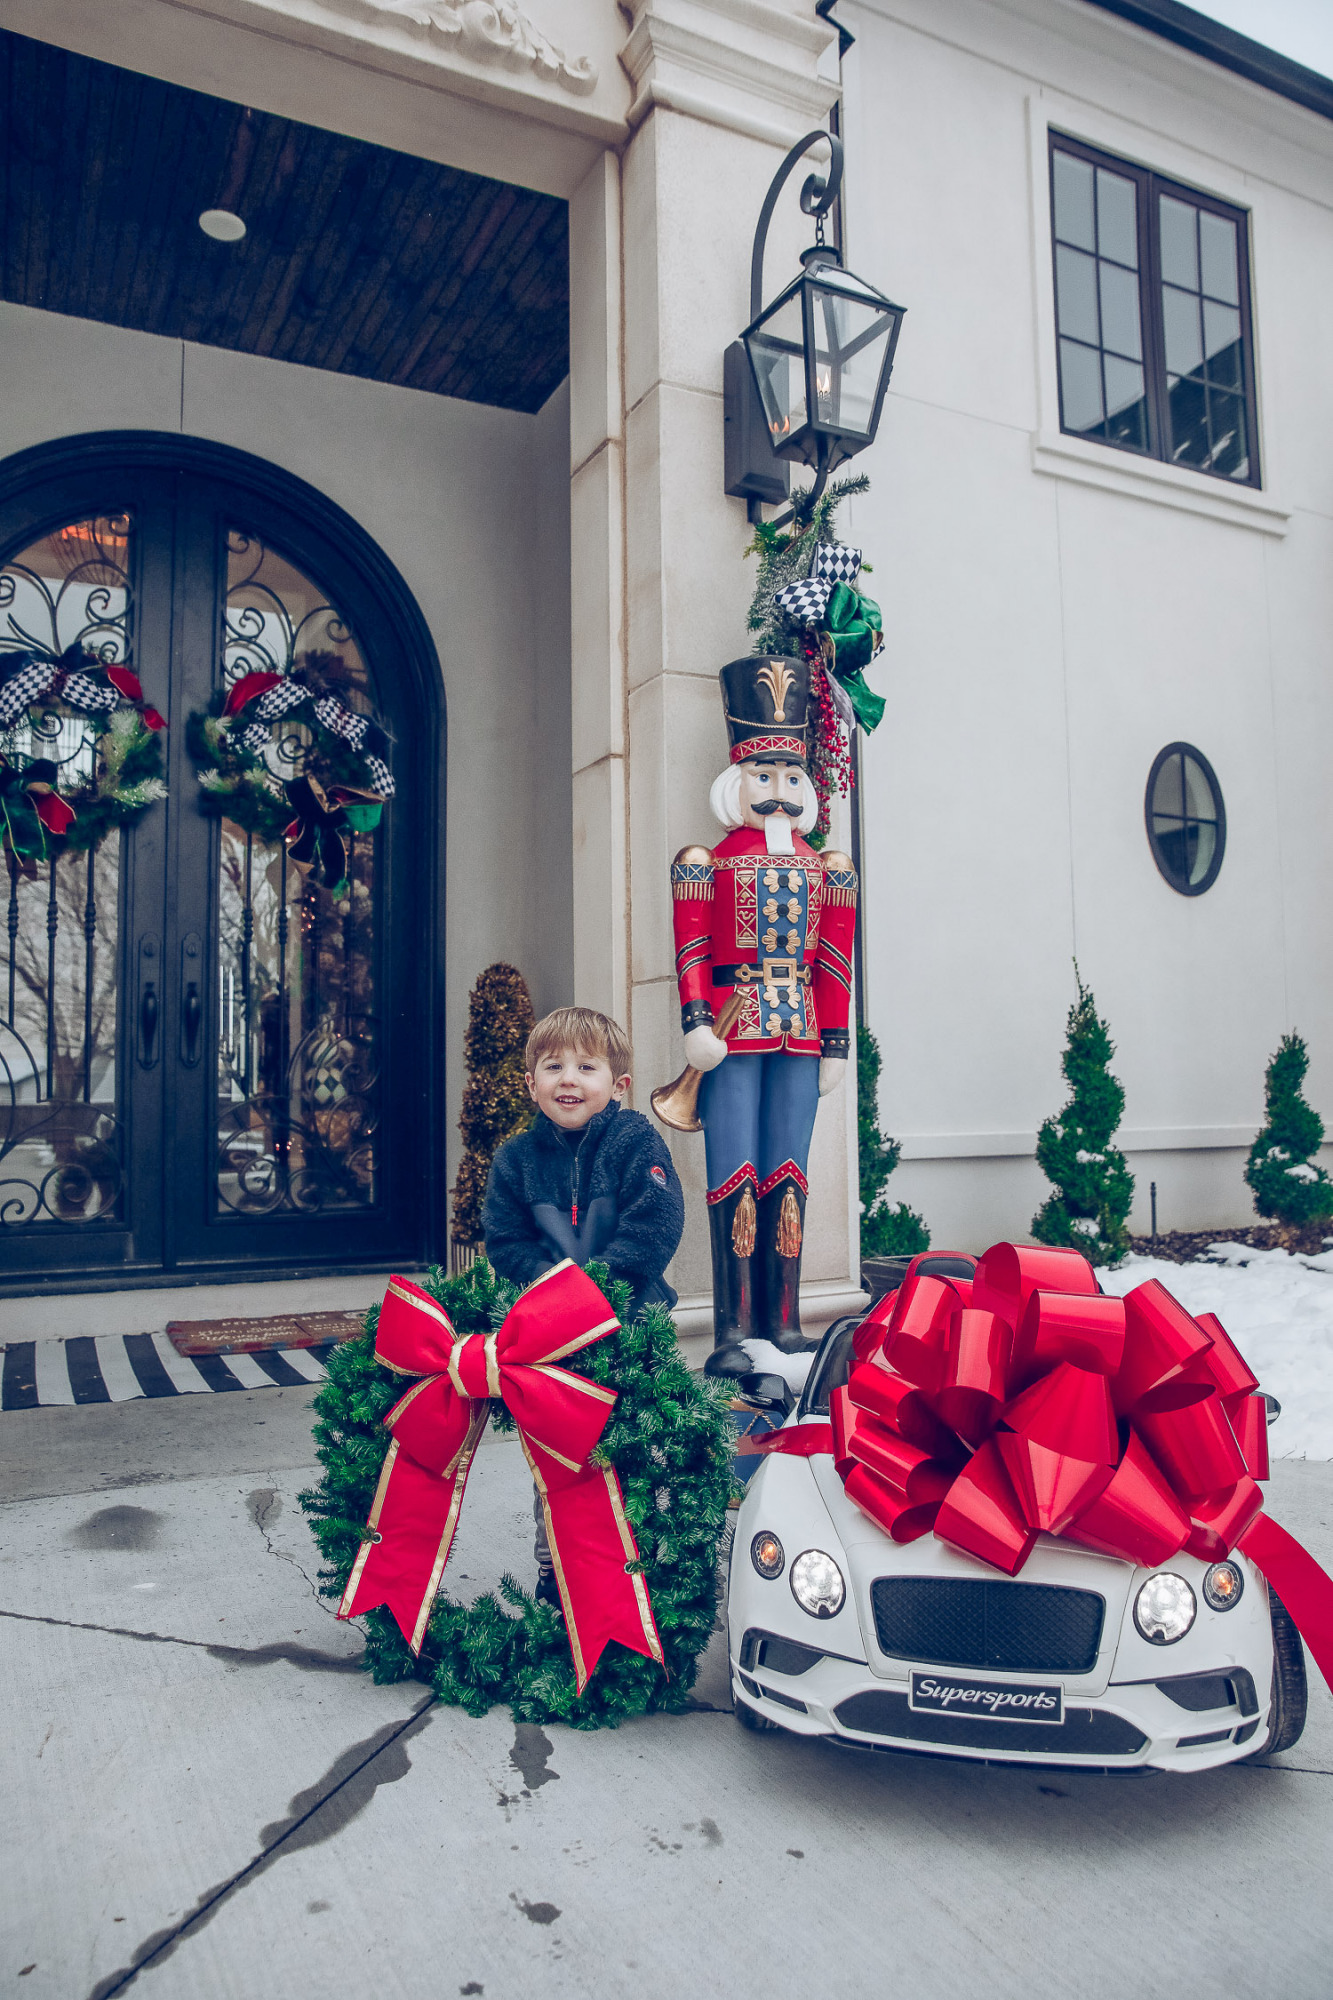 Christmas outdoor decorations home depot, emily gemma home, christmas wreaths on gates with bow, blow up nutcrackers, |Holiday Home Decor by popular US life and style blog, The Sweetest Thing: image of the front of a house decorated with nutcrackers and Christmas wreaths.